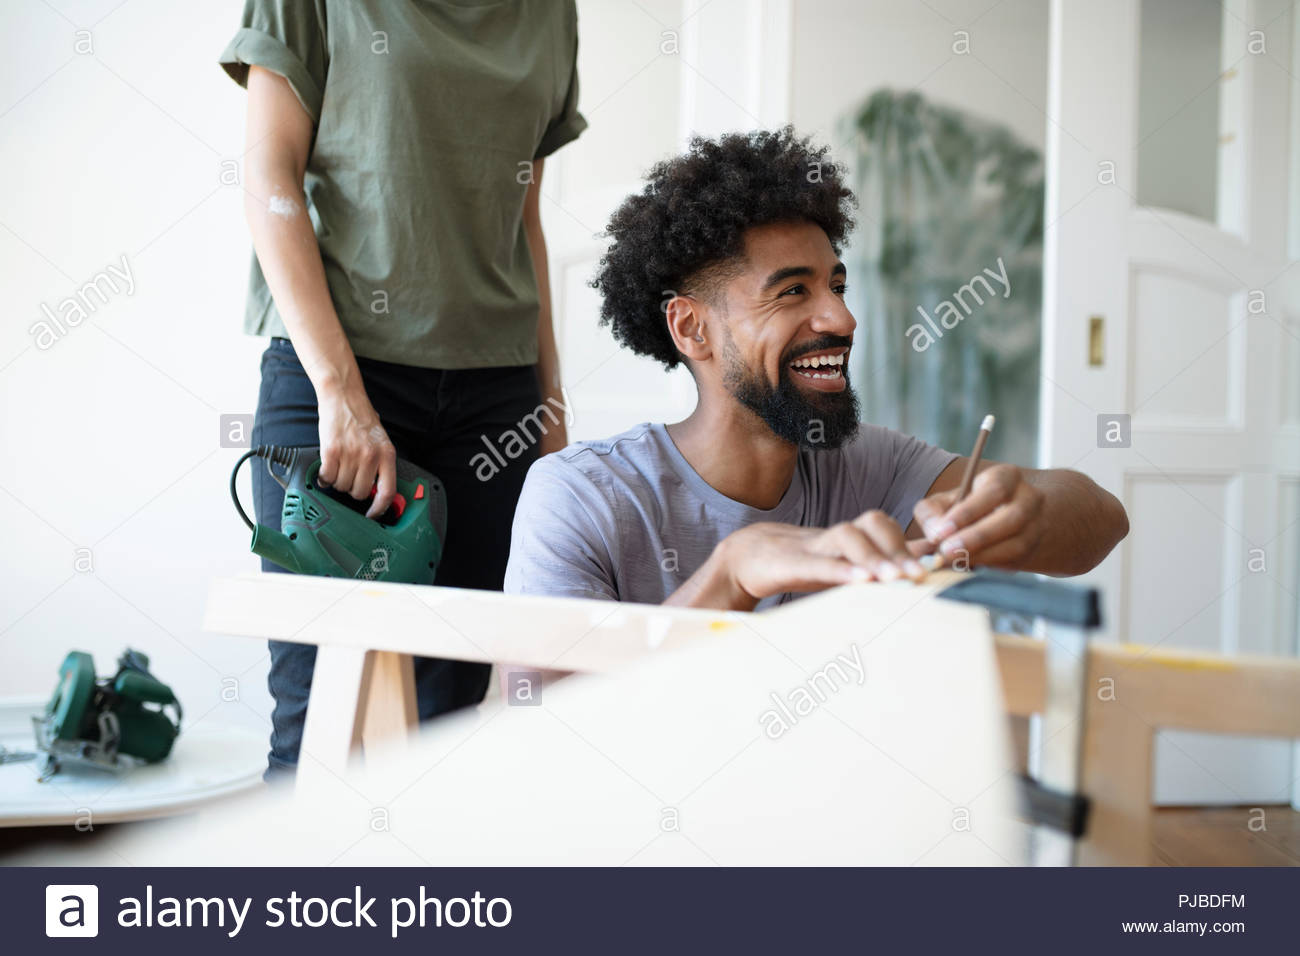 Laughing man doing DIY carpentry project - Stock Image